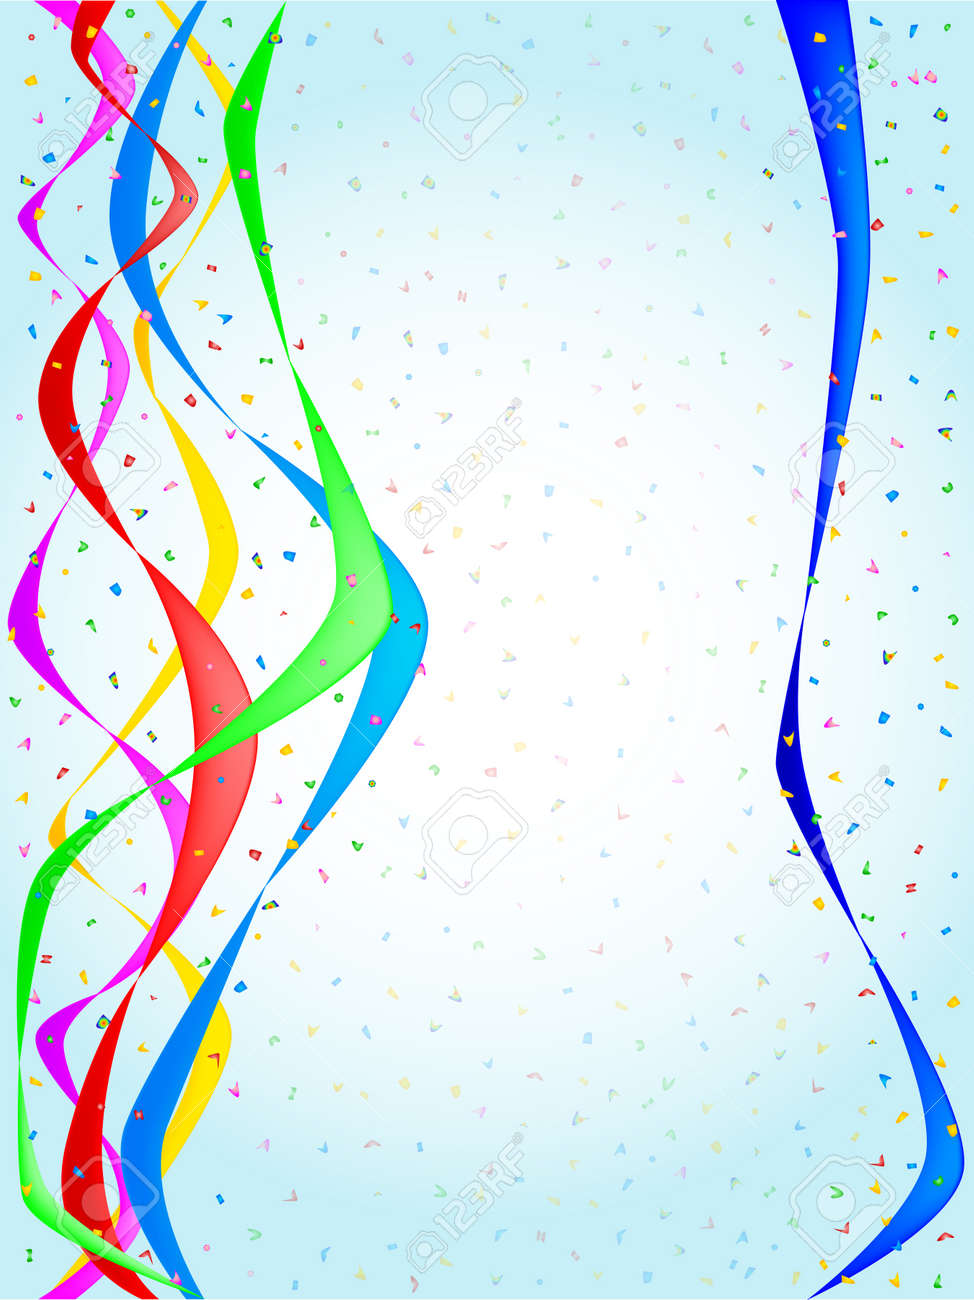 Multi coloured confetti and streamers, a party image - 16246223